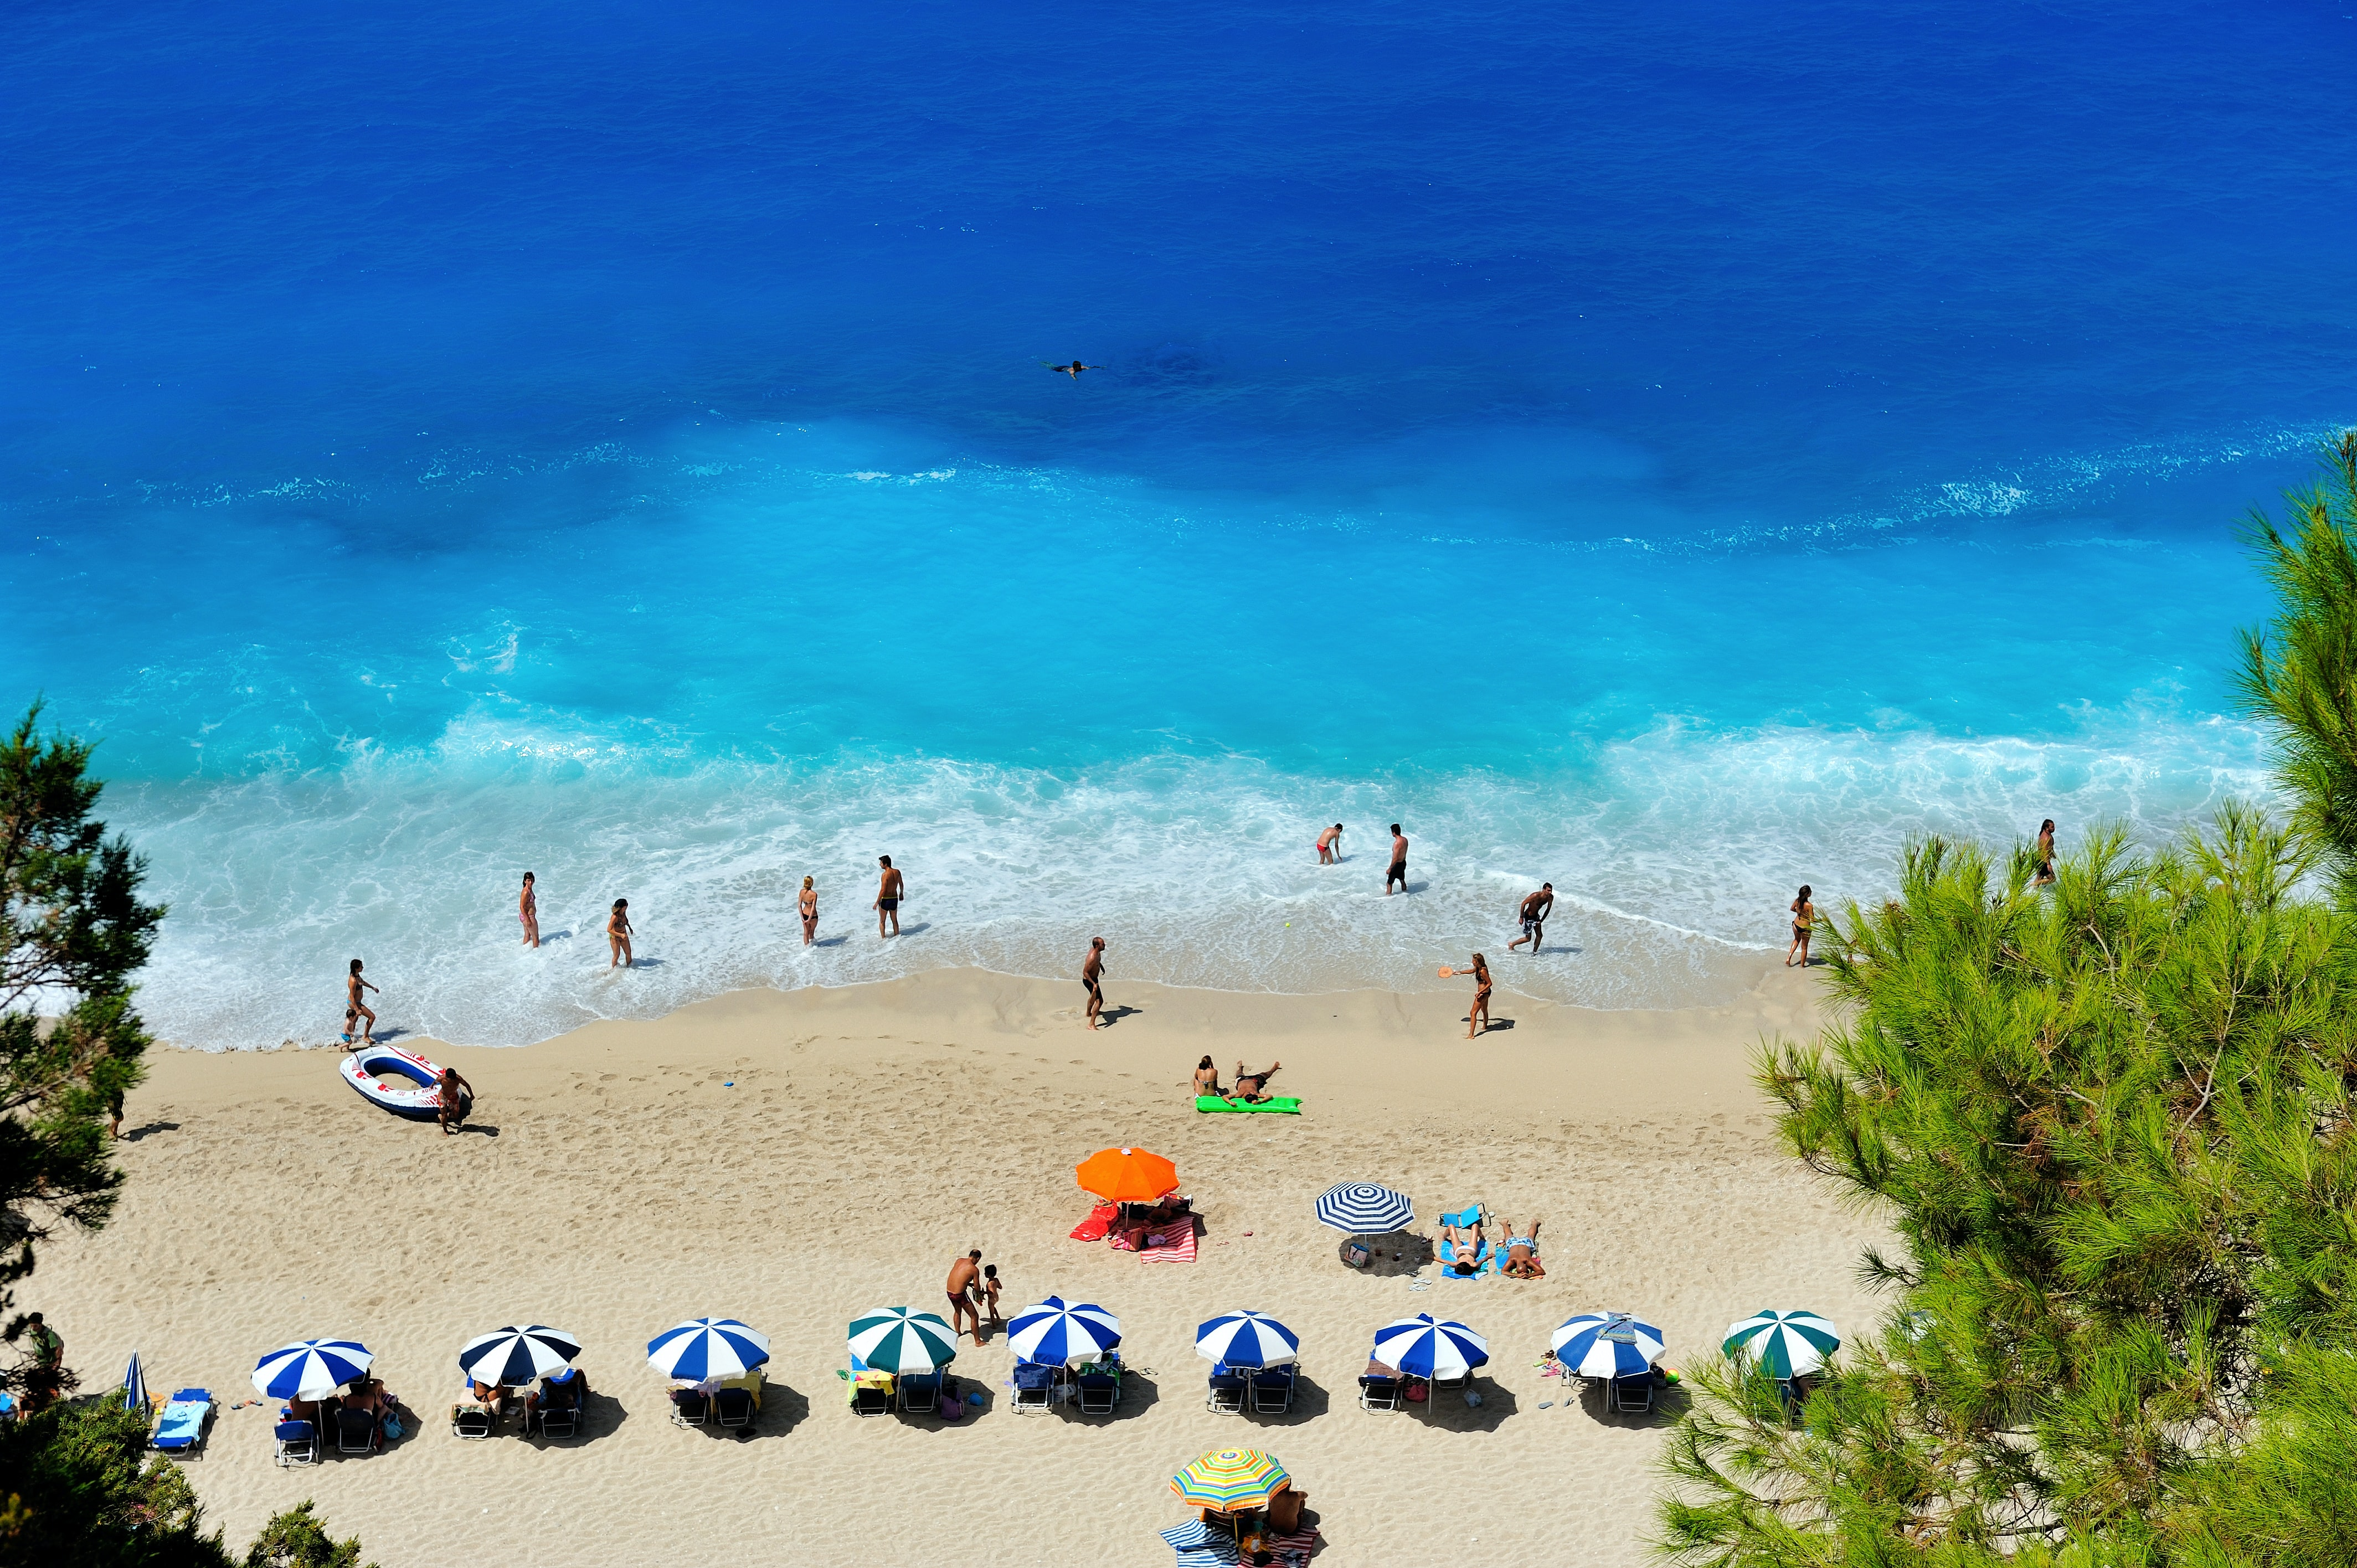 Vacationers reclining on deck chairs and wading through the blue water on a small beach